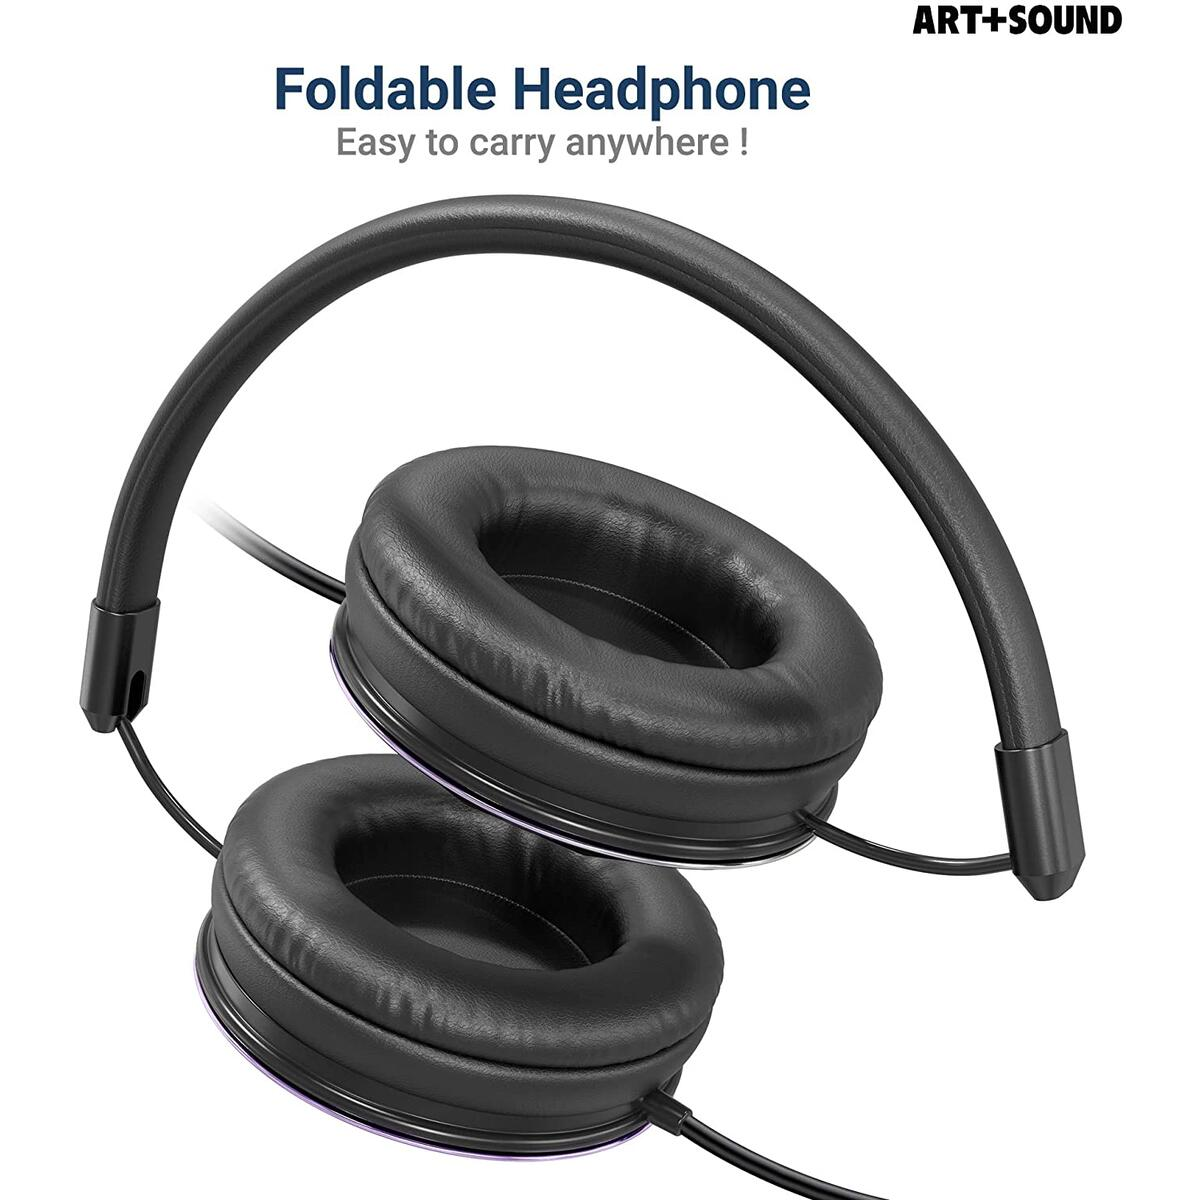 Wired Headphones by ART+SOUND, Faceted Design with Adjustable Band, Soft Cushion Pads, Foldable Design - Iridescent